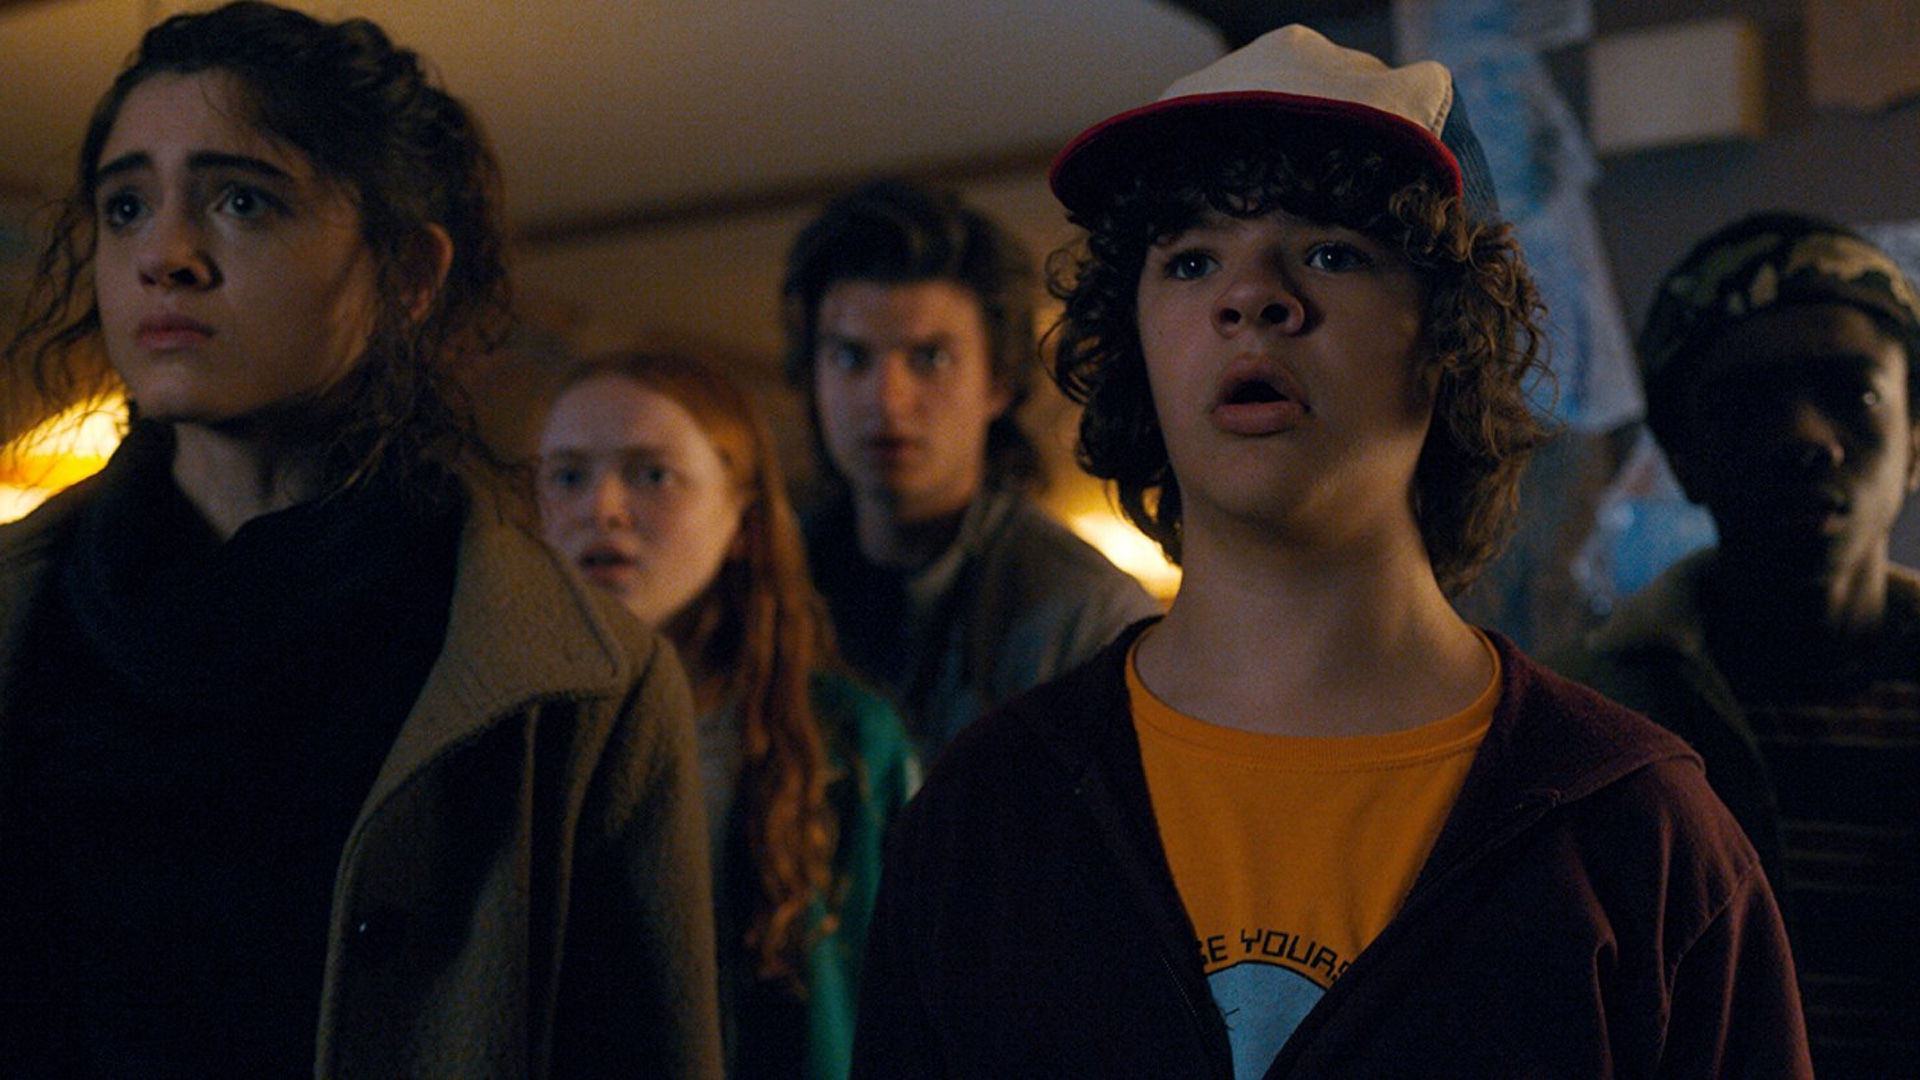 Filtran imágenes del posible final de temporada de Stranger Things 3